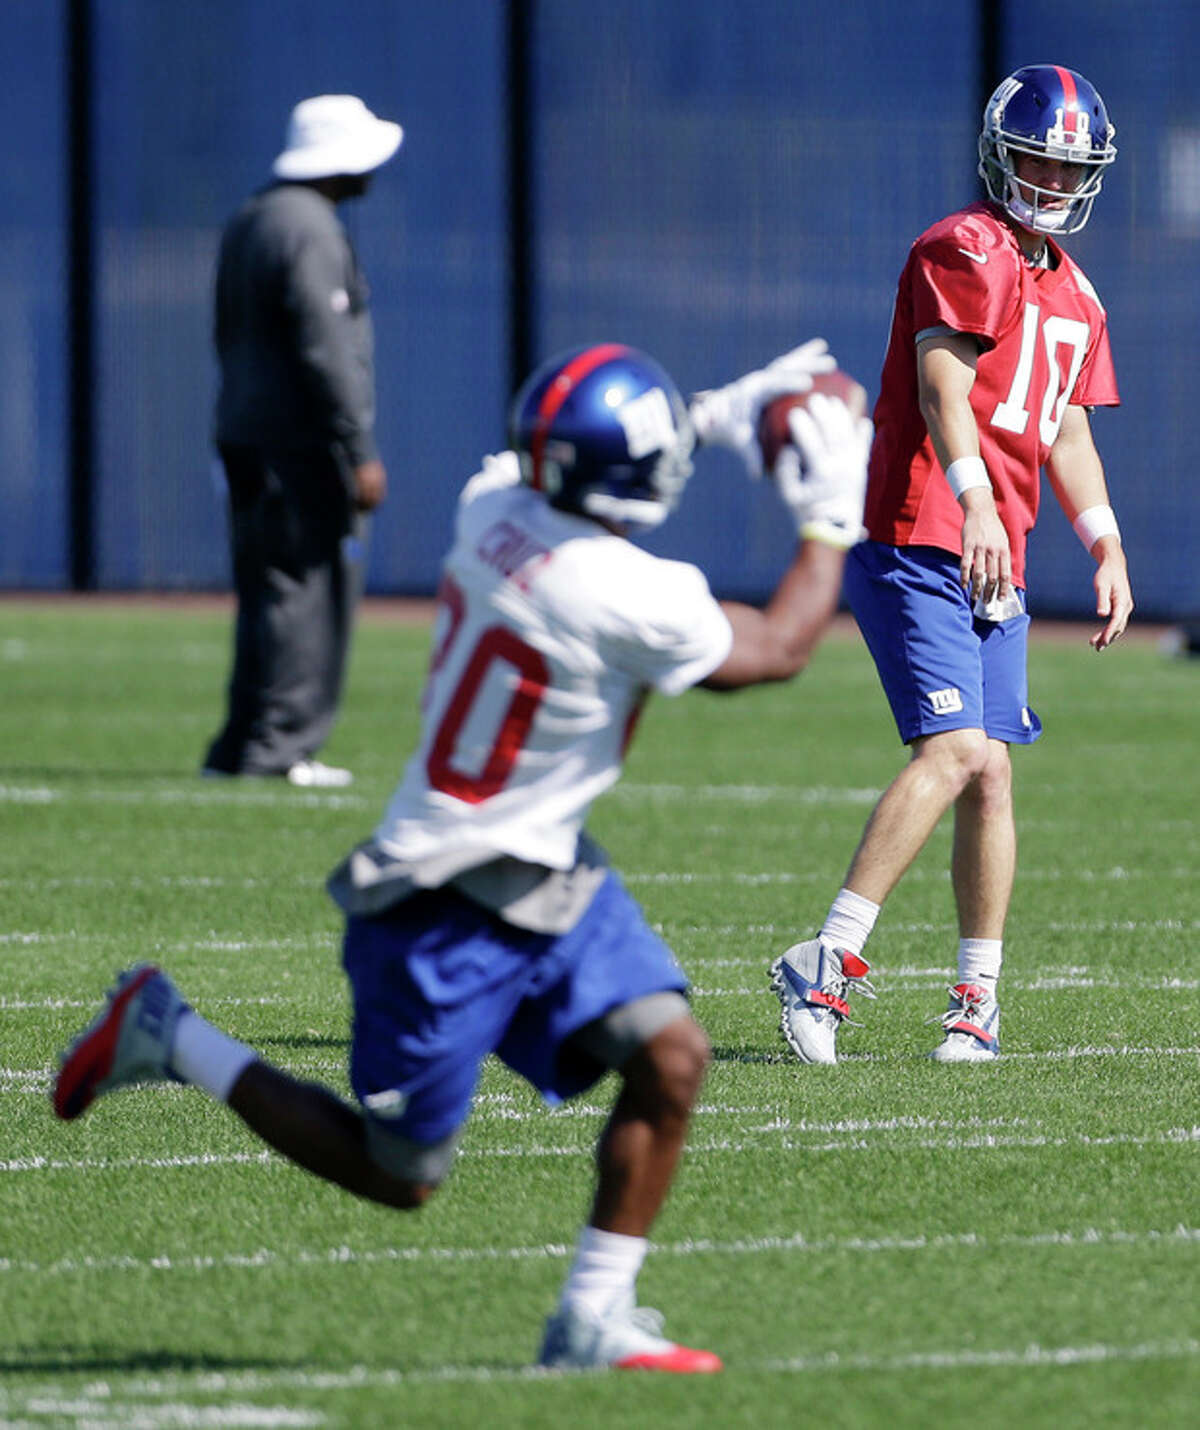 New York Giants wide receiver Victor Cruz, front, makes a catch on a pass from quarterback Eli Manning, back, during NFL football practice, Wednesday, Oct. 2, 2013, in East Rutherford, N.J. (AP Photo/Julio Cortez)